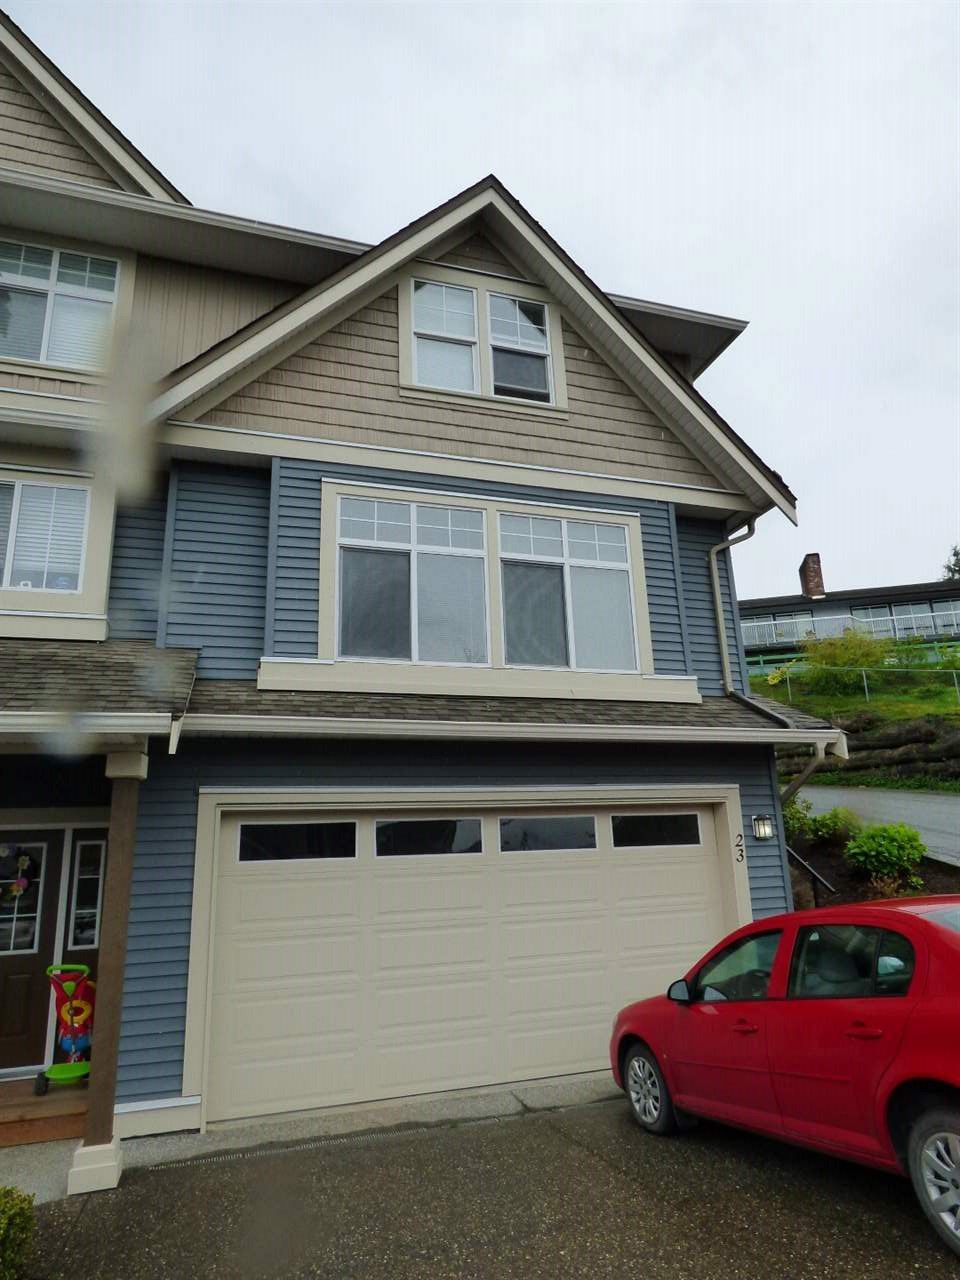 """Main Photo: 23 5648 PROMONTORY Road in Chilliwack: Promontory Townhouse for sale in """"GABLES AT COPPER CREEK"""" (Sardis)  : MLS®# R2161704"""